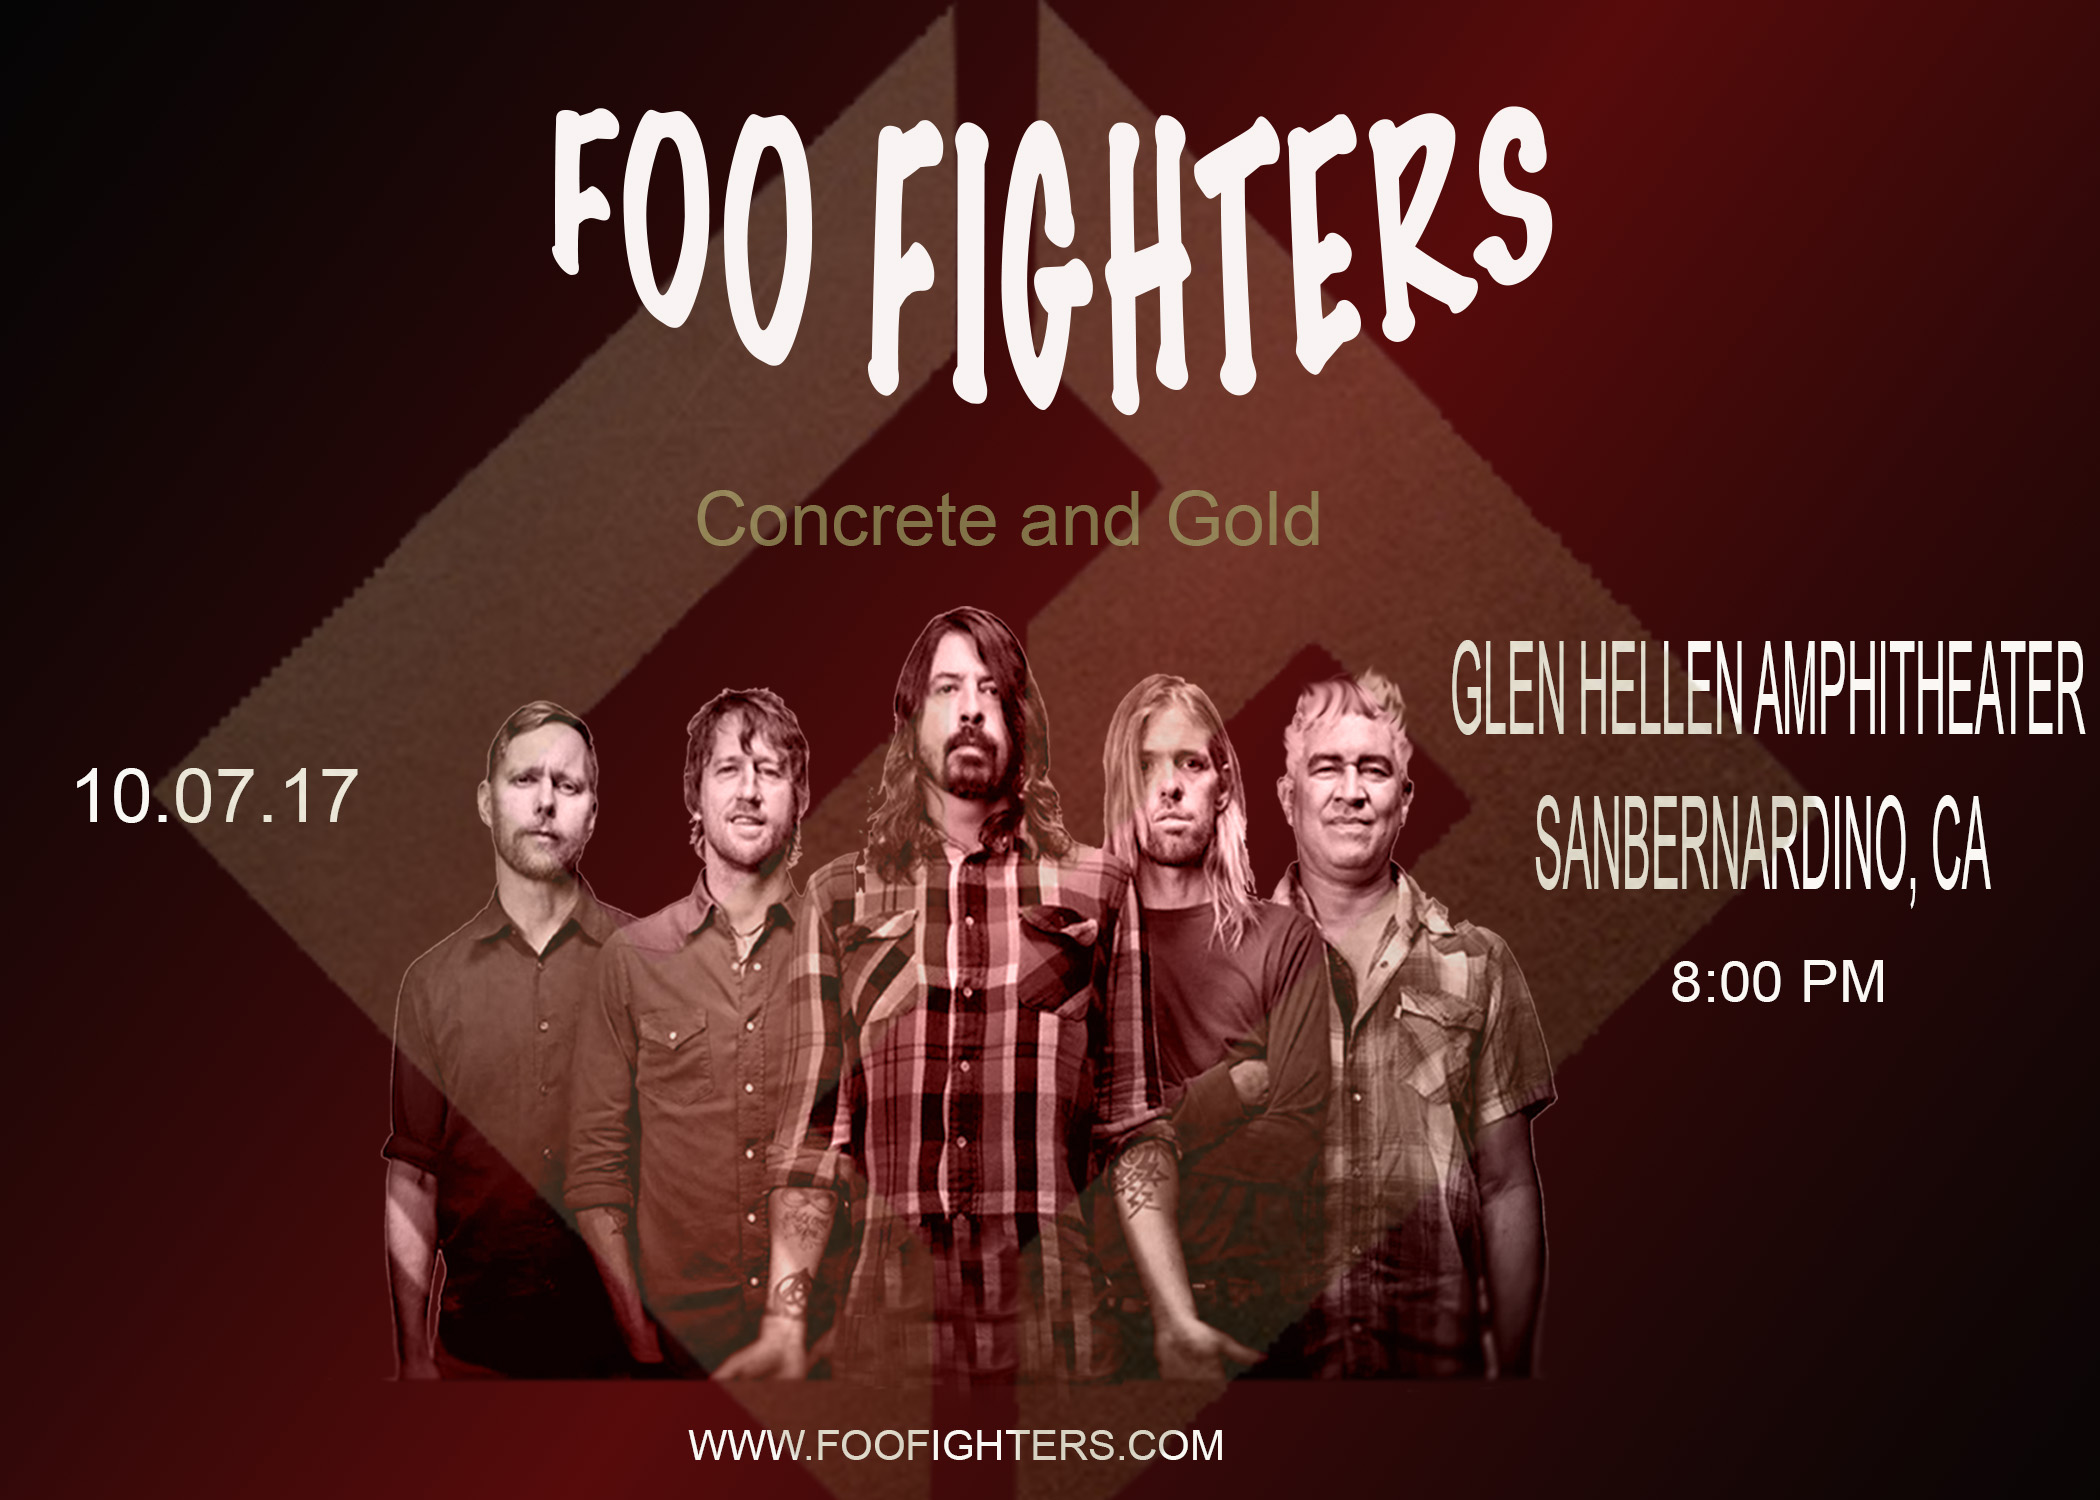 Foo fighters post card